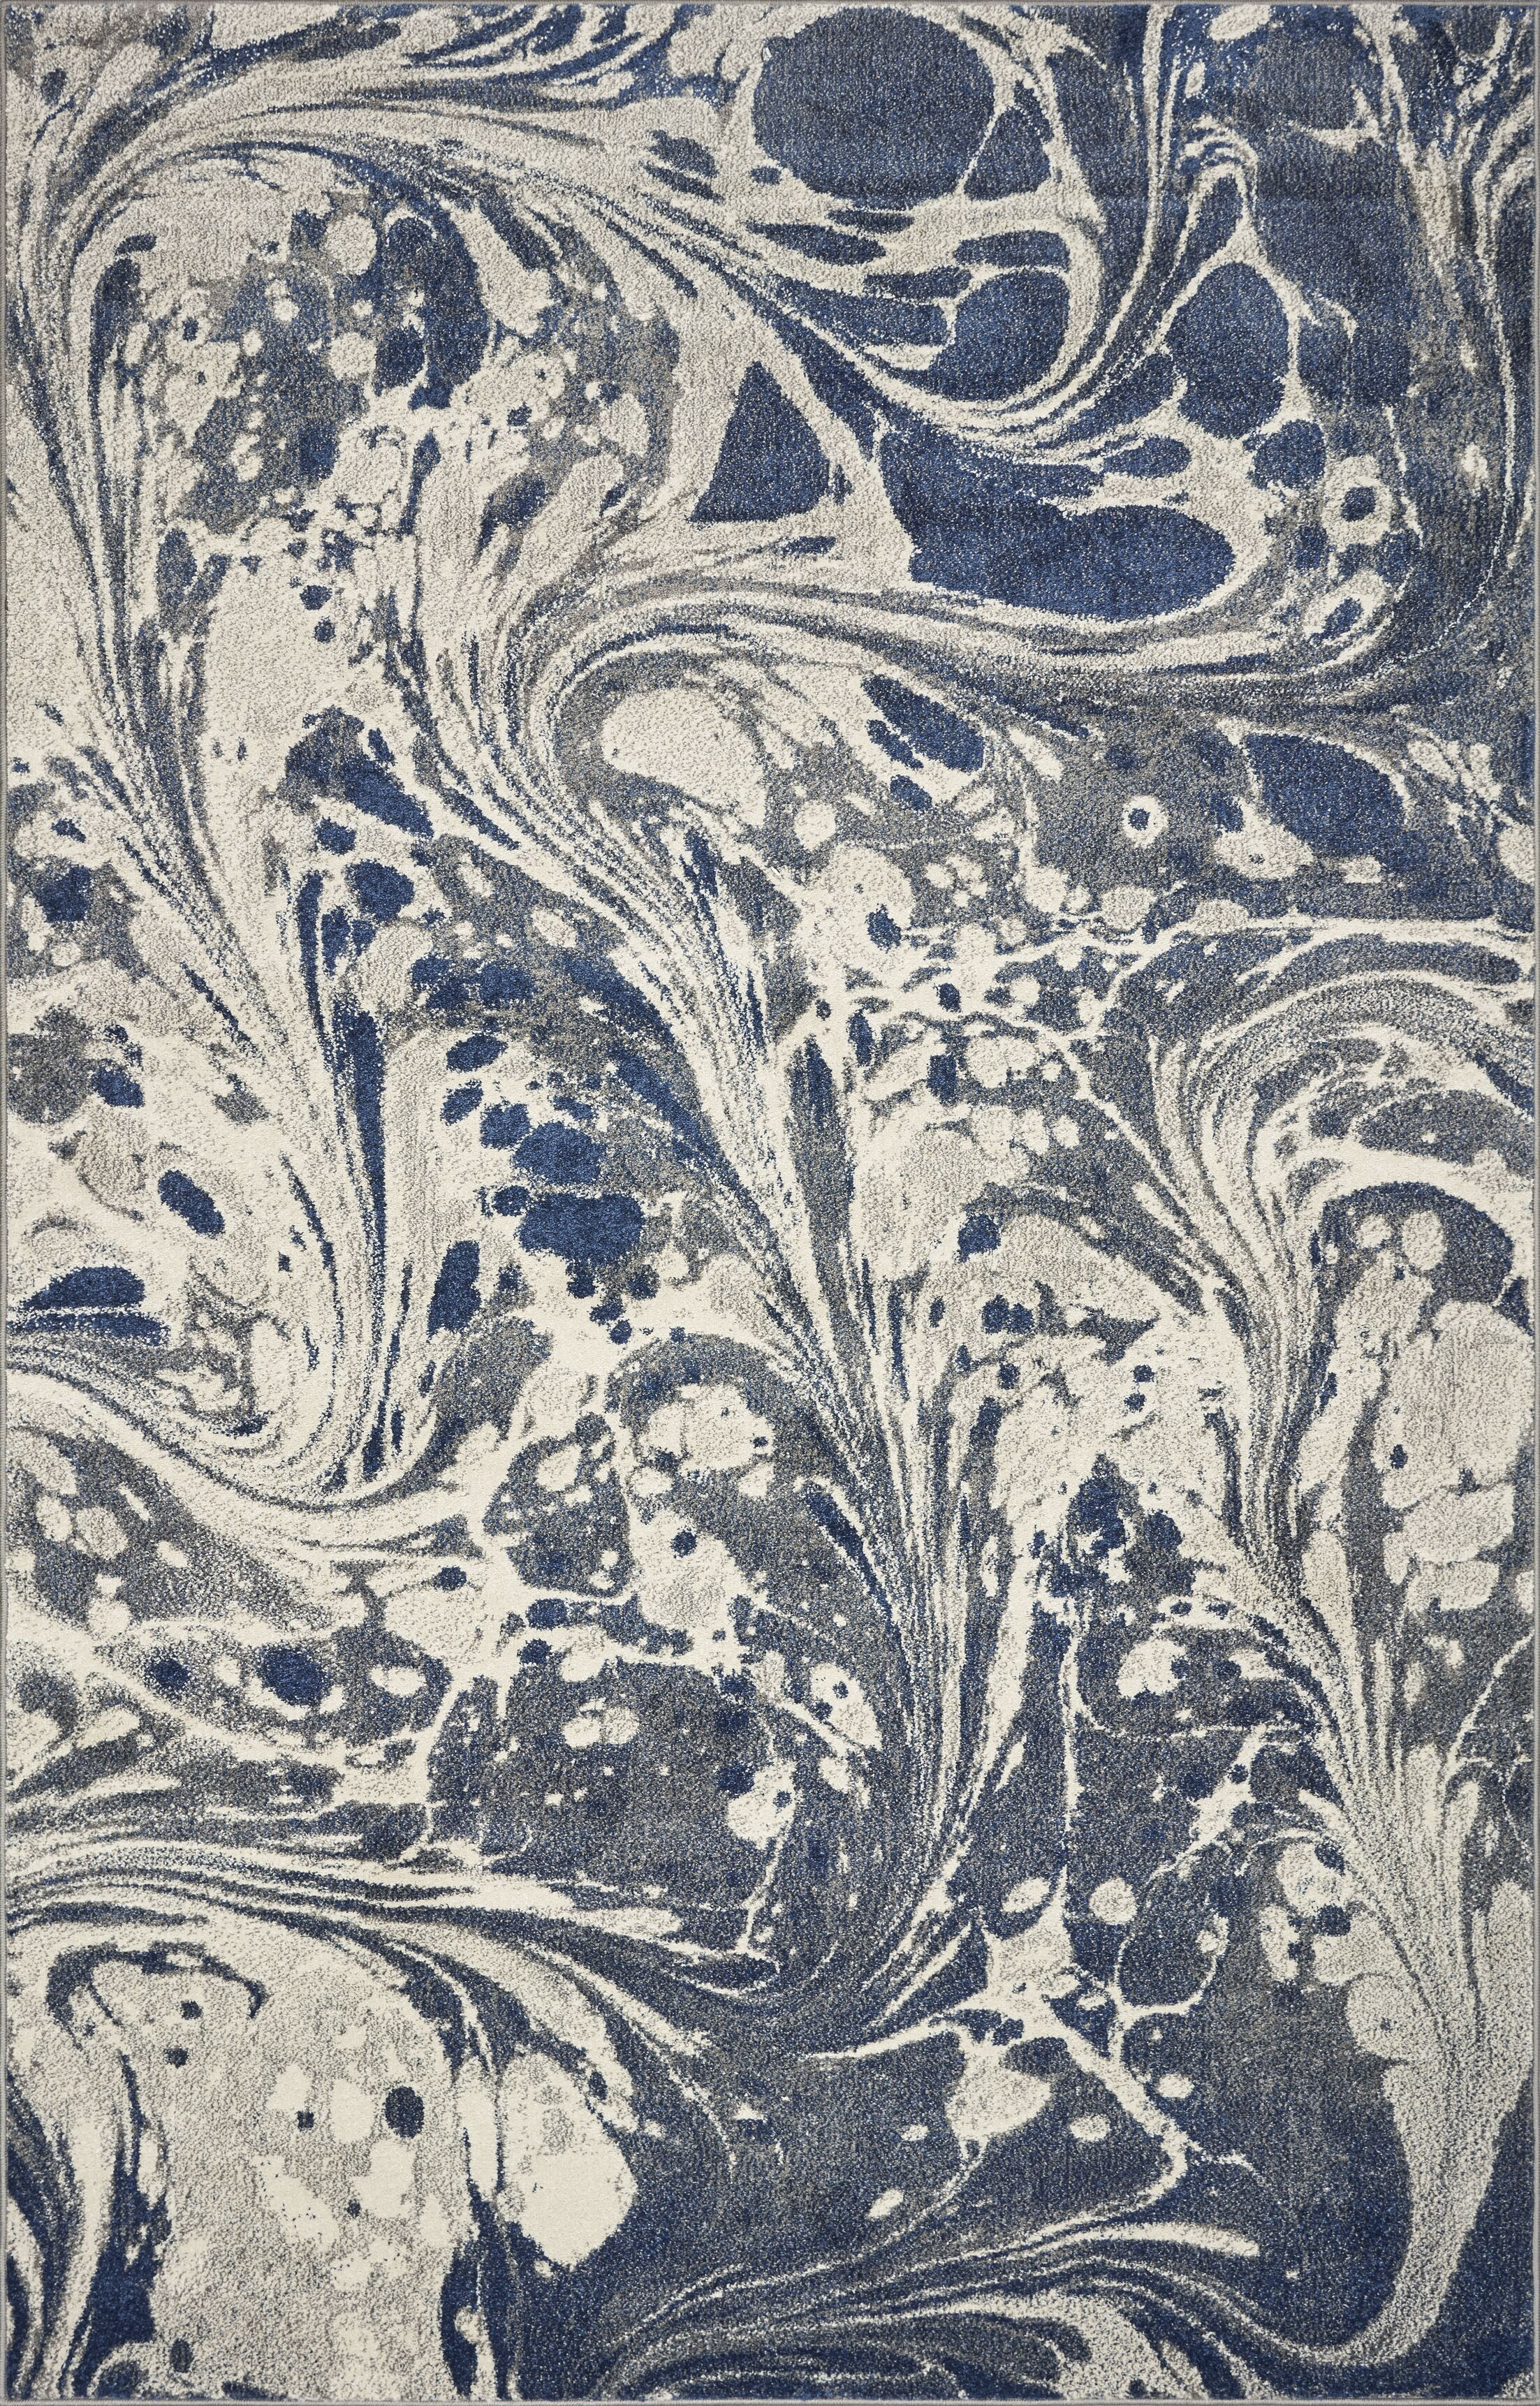 Strouth Marble Gray/Navy Area Rug Rug Size: Rectangle 5' x 7'6